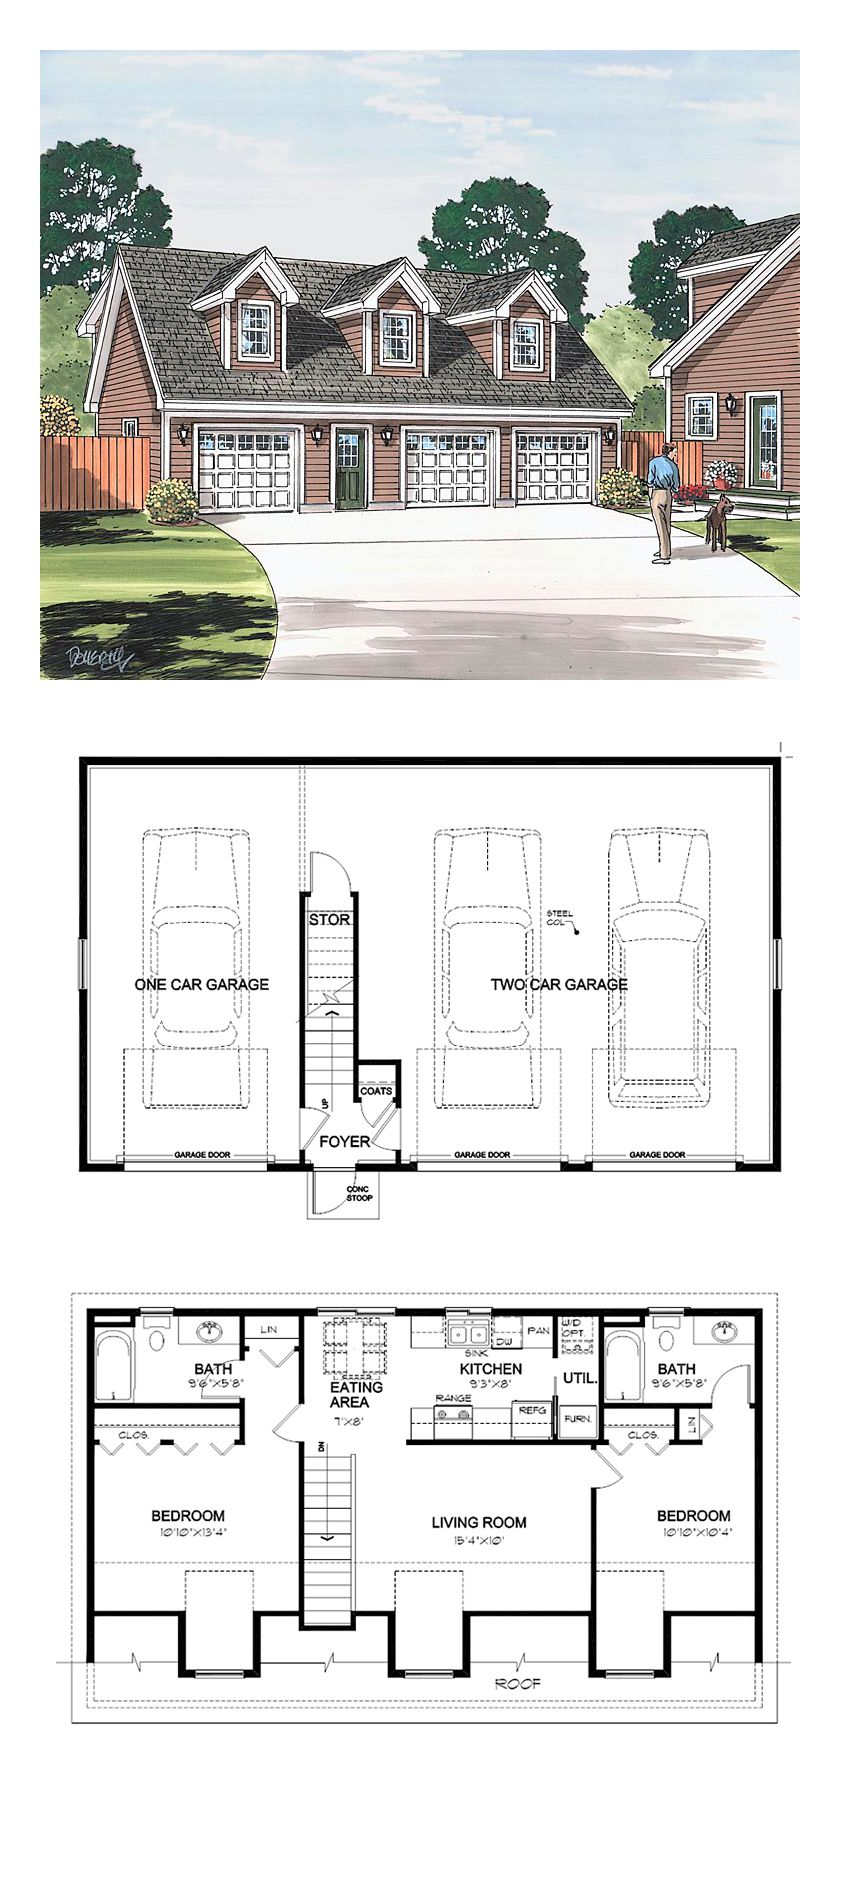 Garage apartment plan 30032 total living area 887 sq for Apartment over garage plans